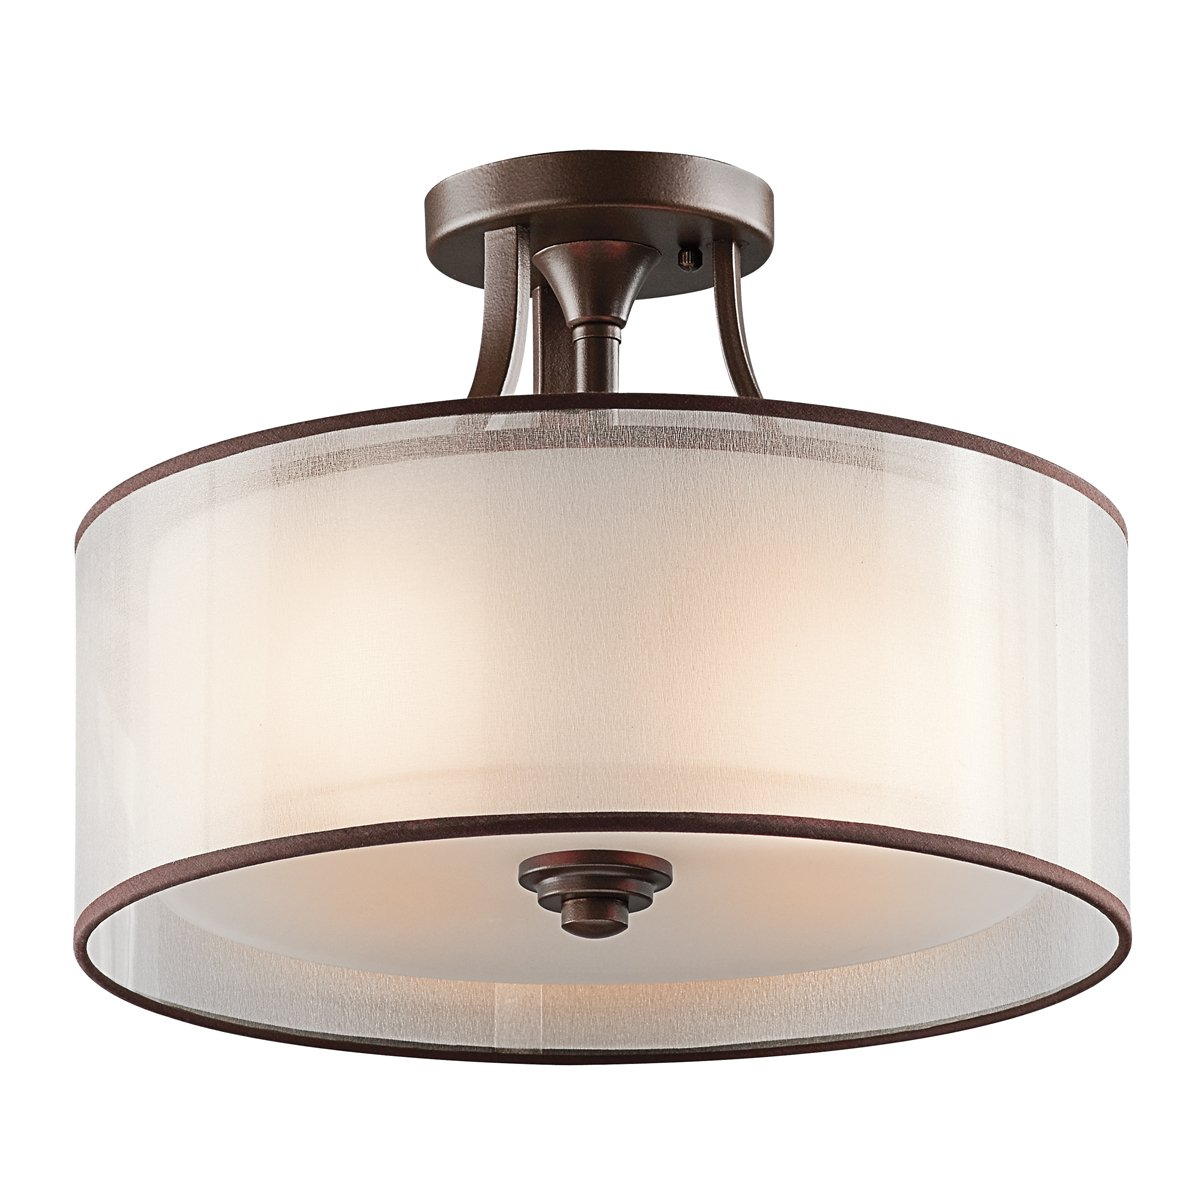 Flush Mount Kitchen Light Kichler Lighting 42386miz Lacey Semi Flush Ceiling Light Mission